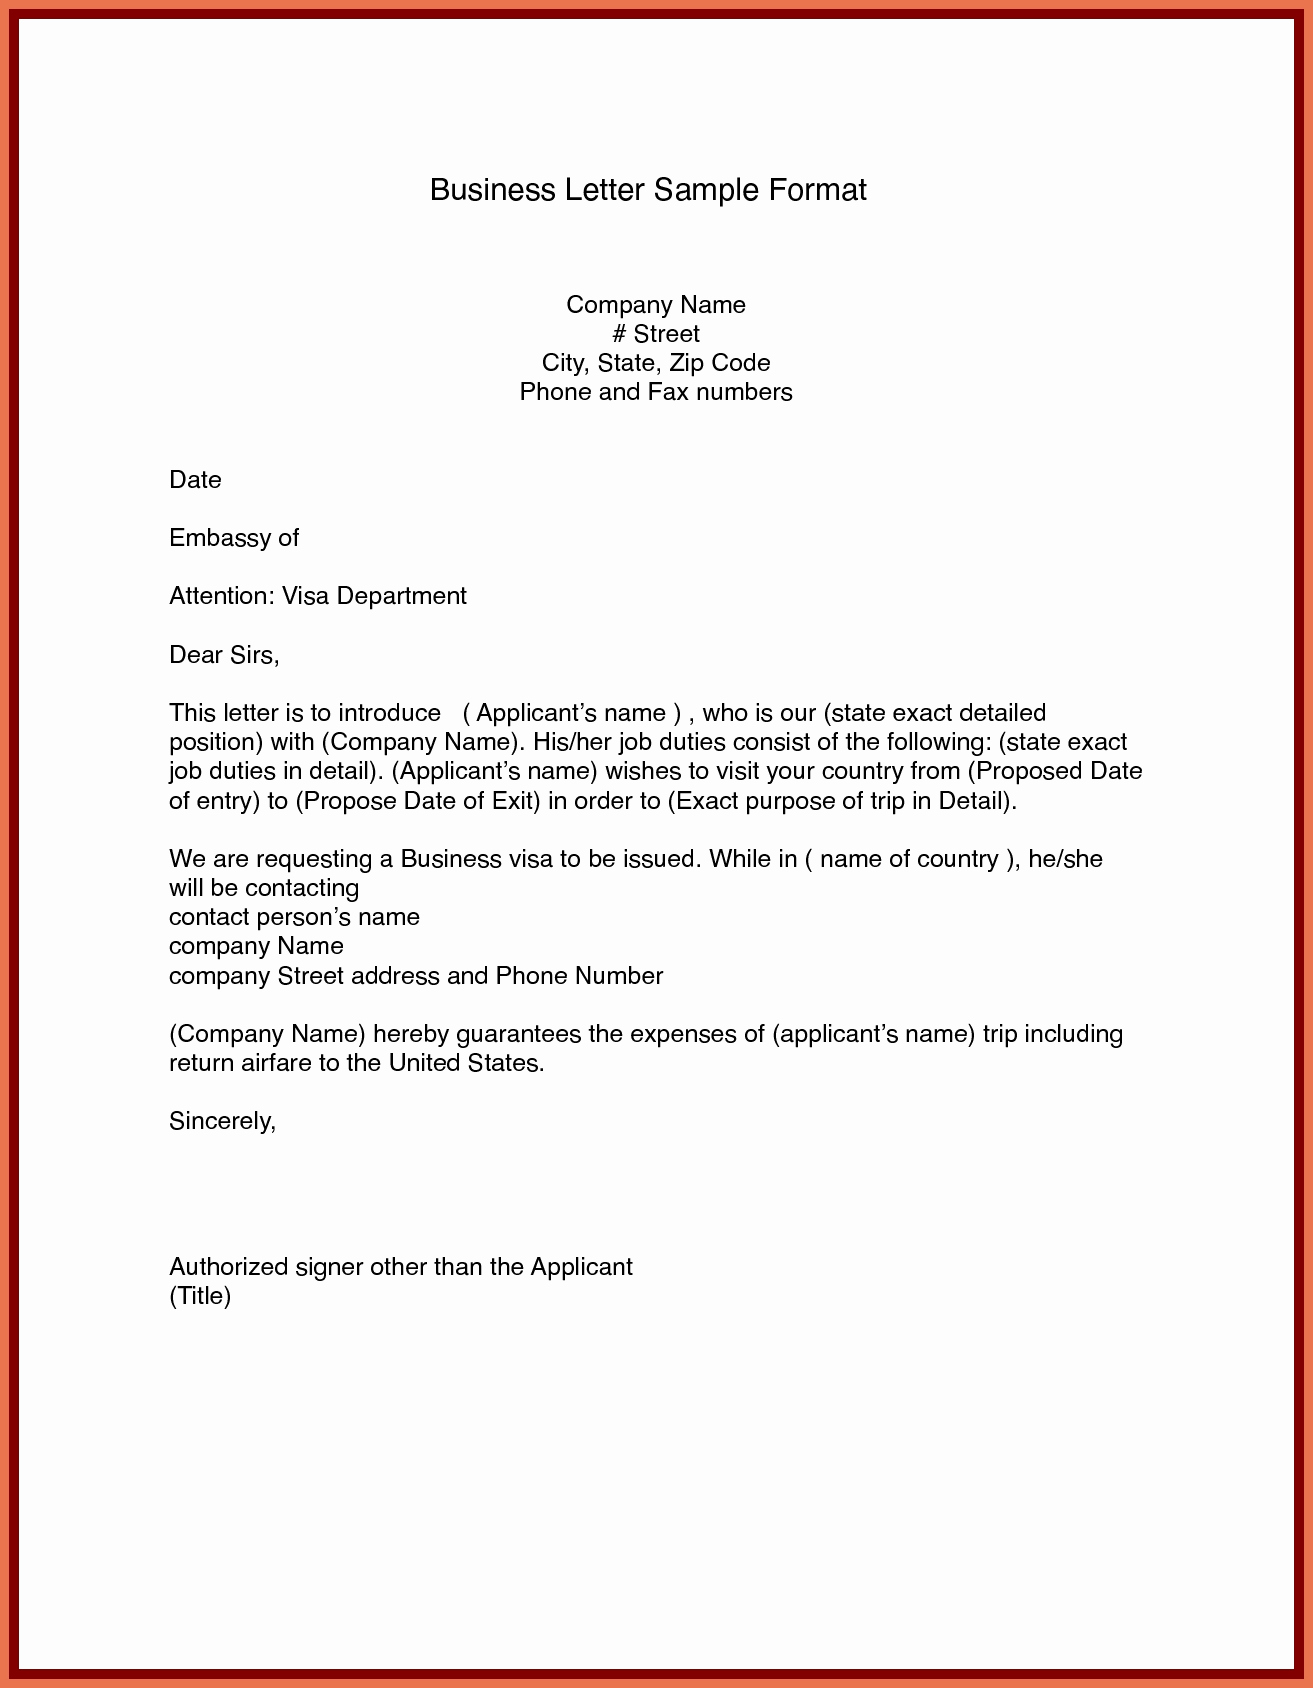 Sample Of Bussiness Letters Unique Sample Business Letter format